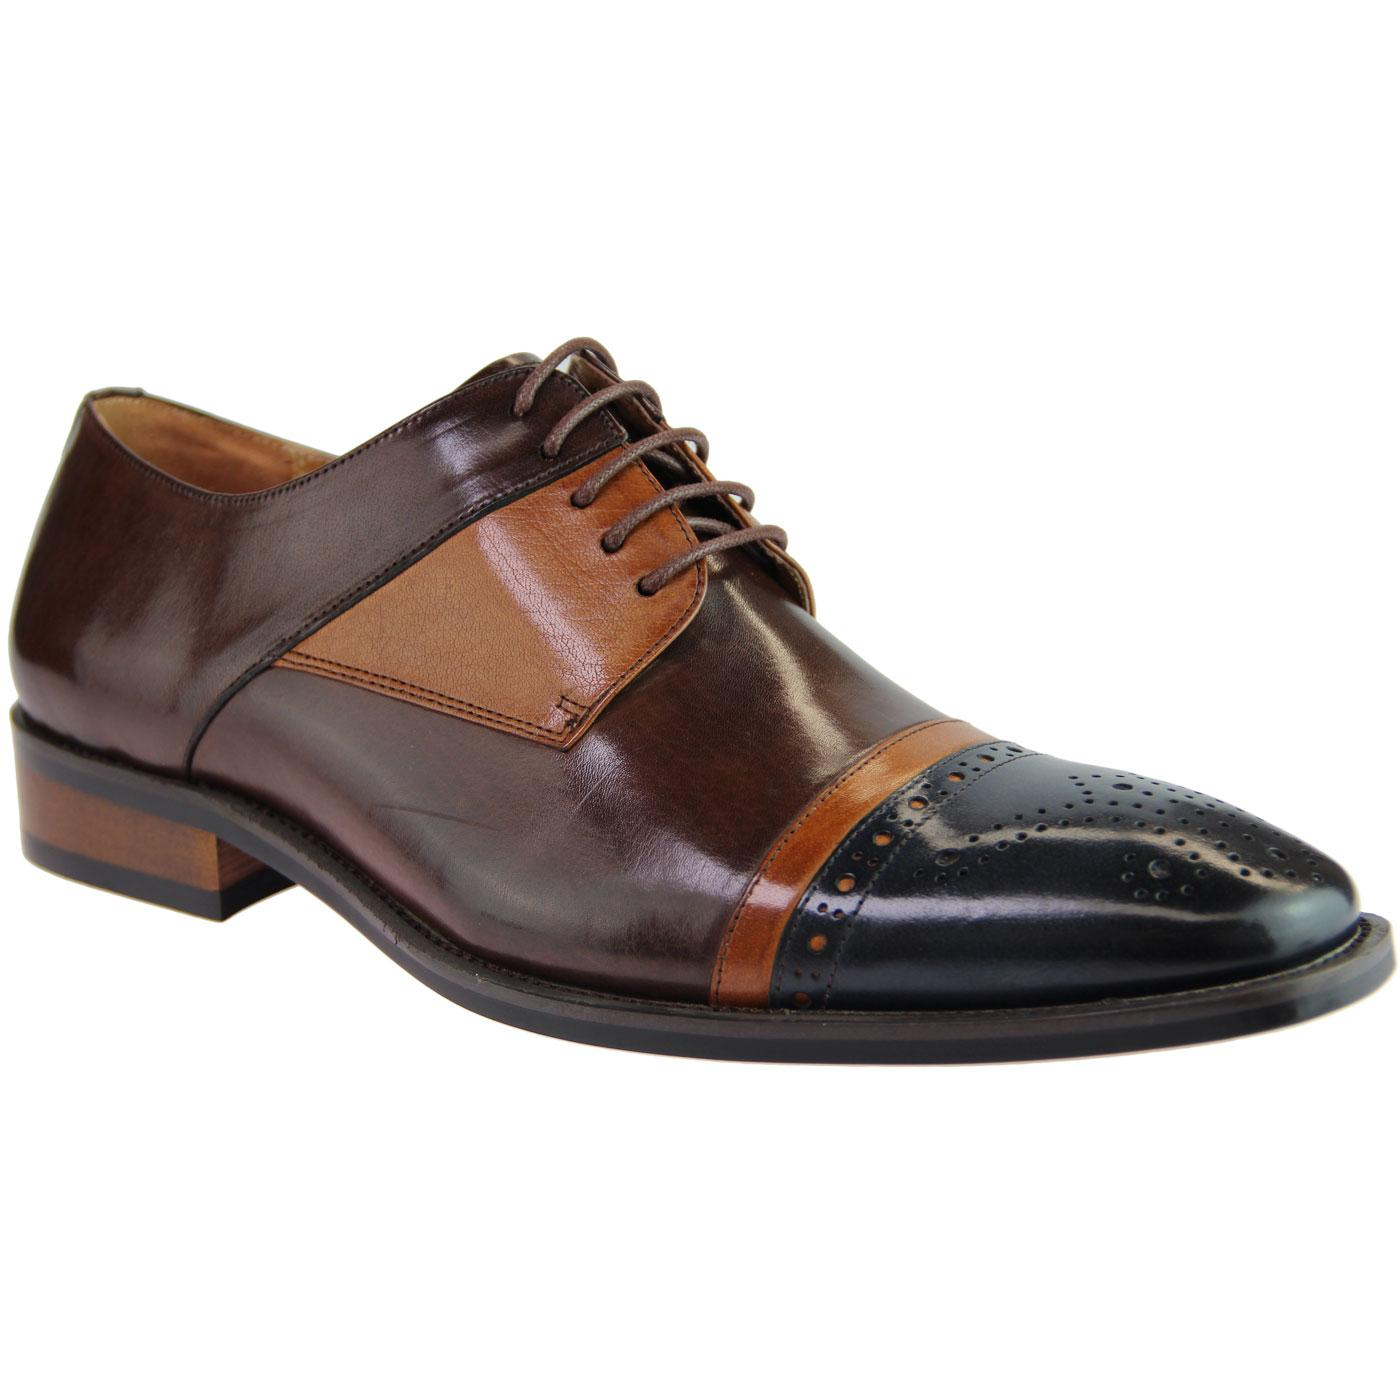 Ronald SERGIO DULETTI 60s Mod Oxford Brogues NAVY